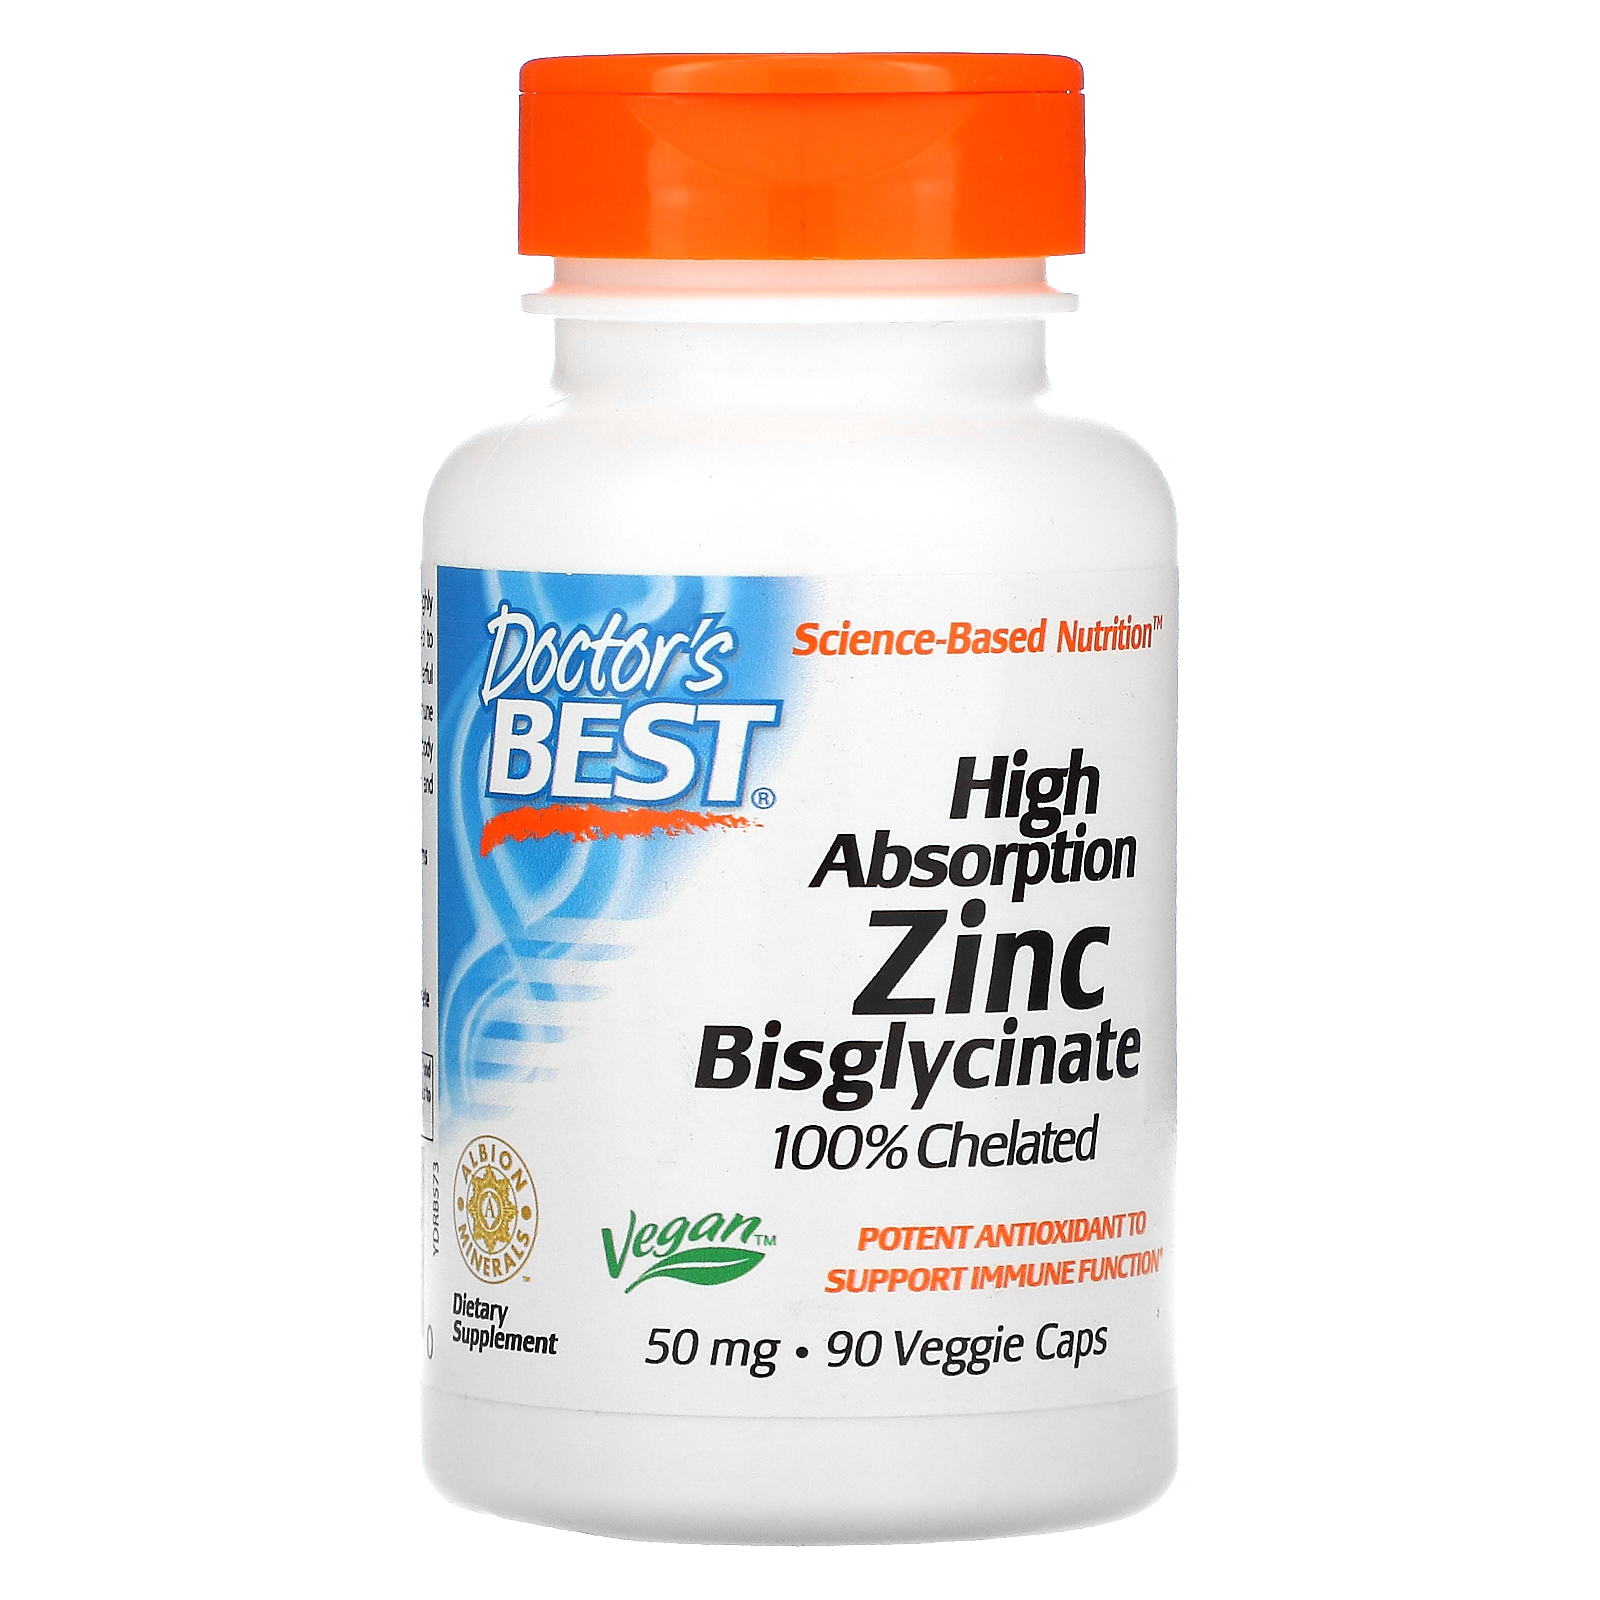 Doctor's Best, High Absorption Zinc Bisglycinate, 100% Chelated, 50 mg , 90 Veggie Caps